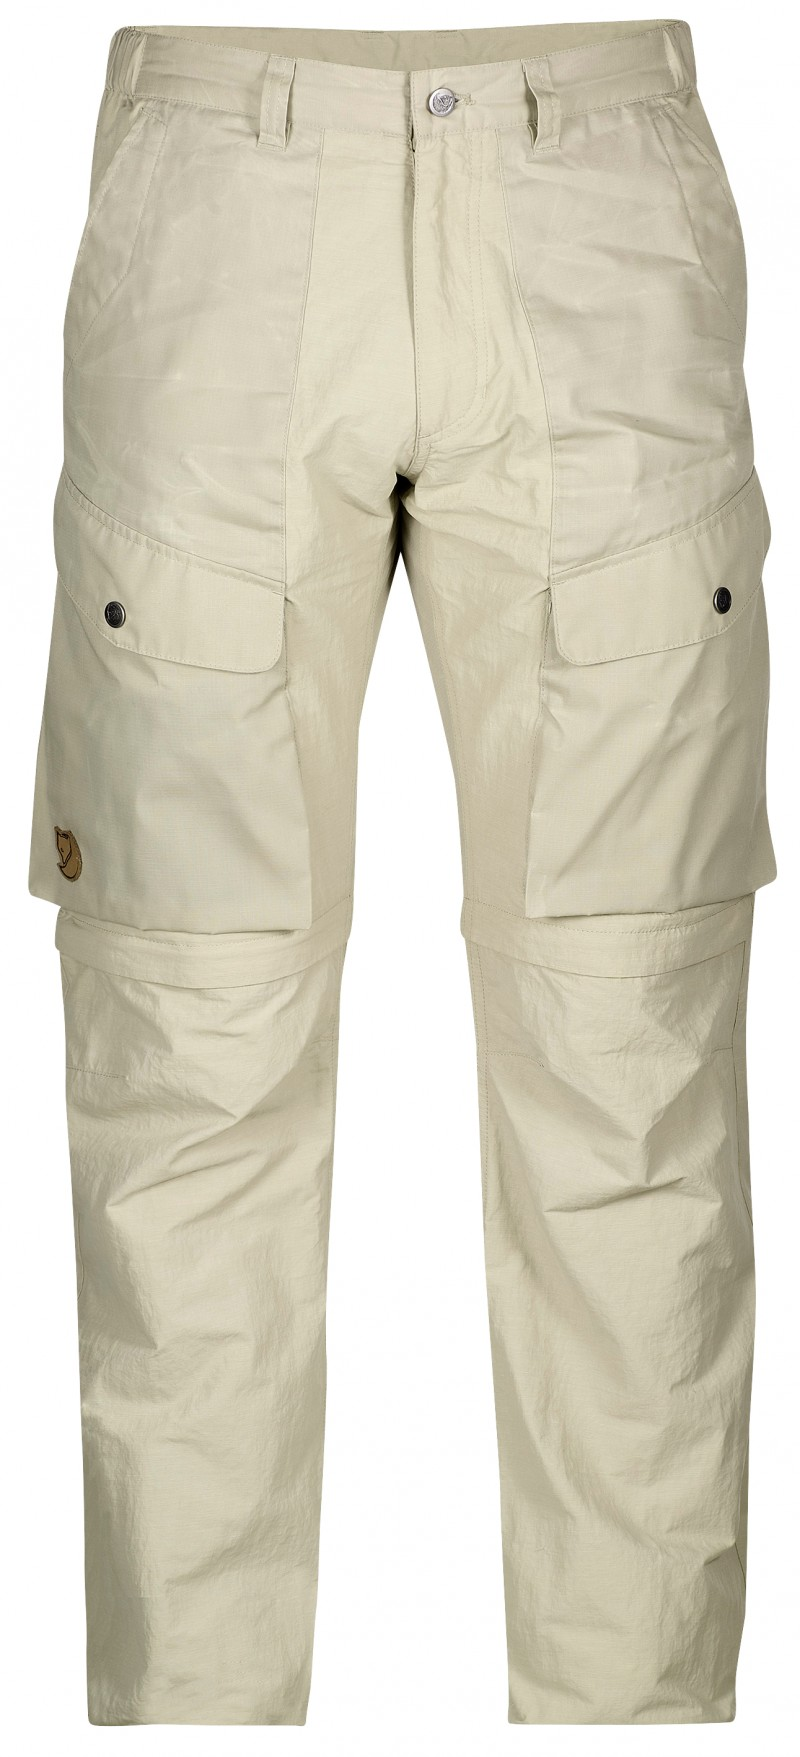 FjallRaven Abisko Hybrid Zip Off Trousers Beige-30